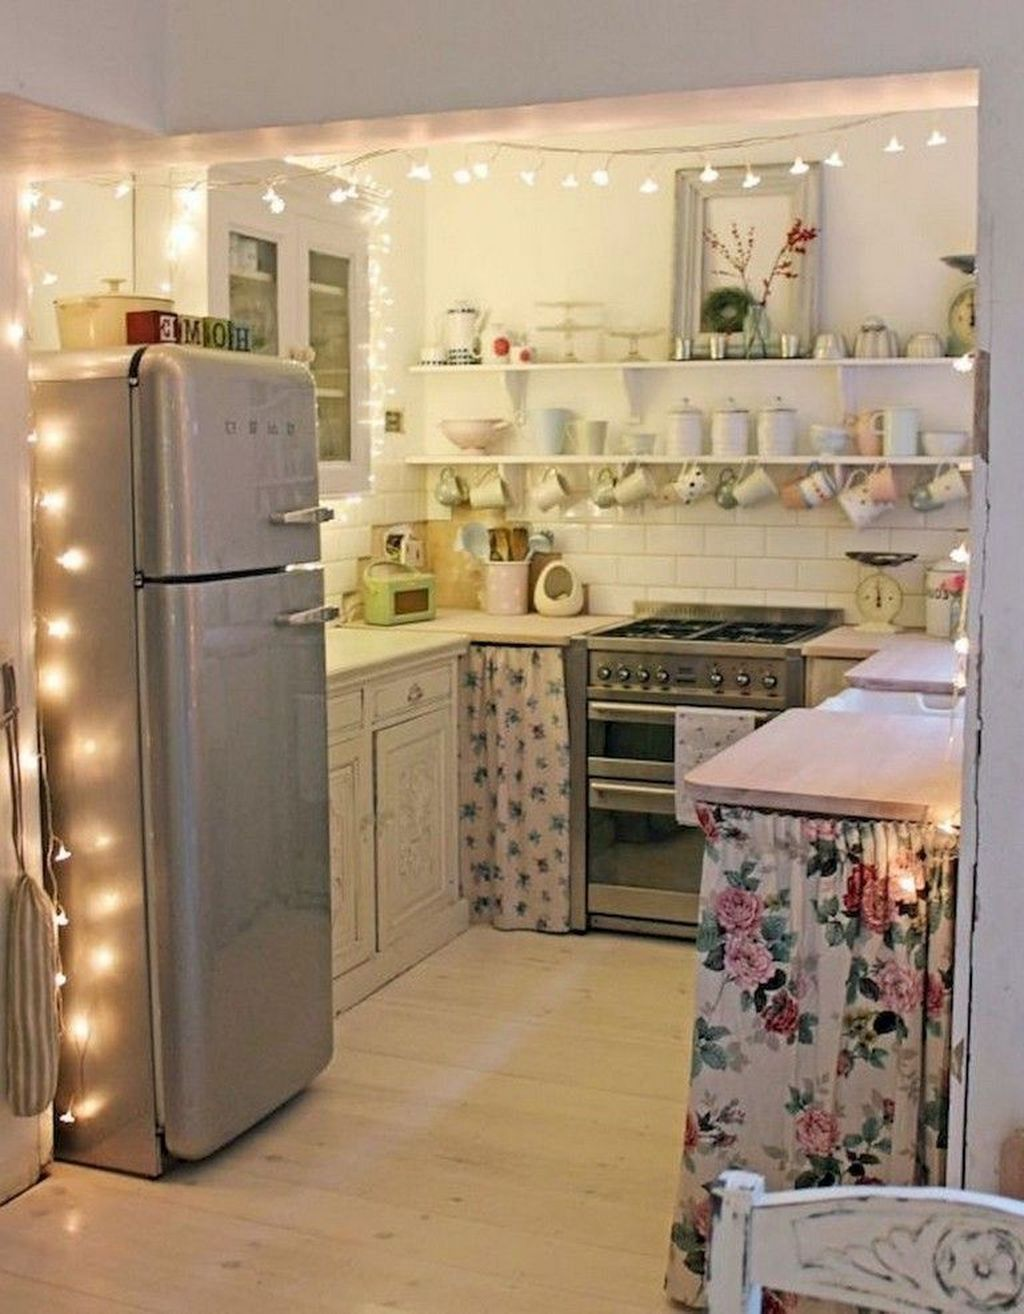 37 Amazing College Apartment Decorating Ideas To Try This Year Kitchen Decor Apartment Small Apartment Kitchen Decor College Apartment Decor